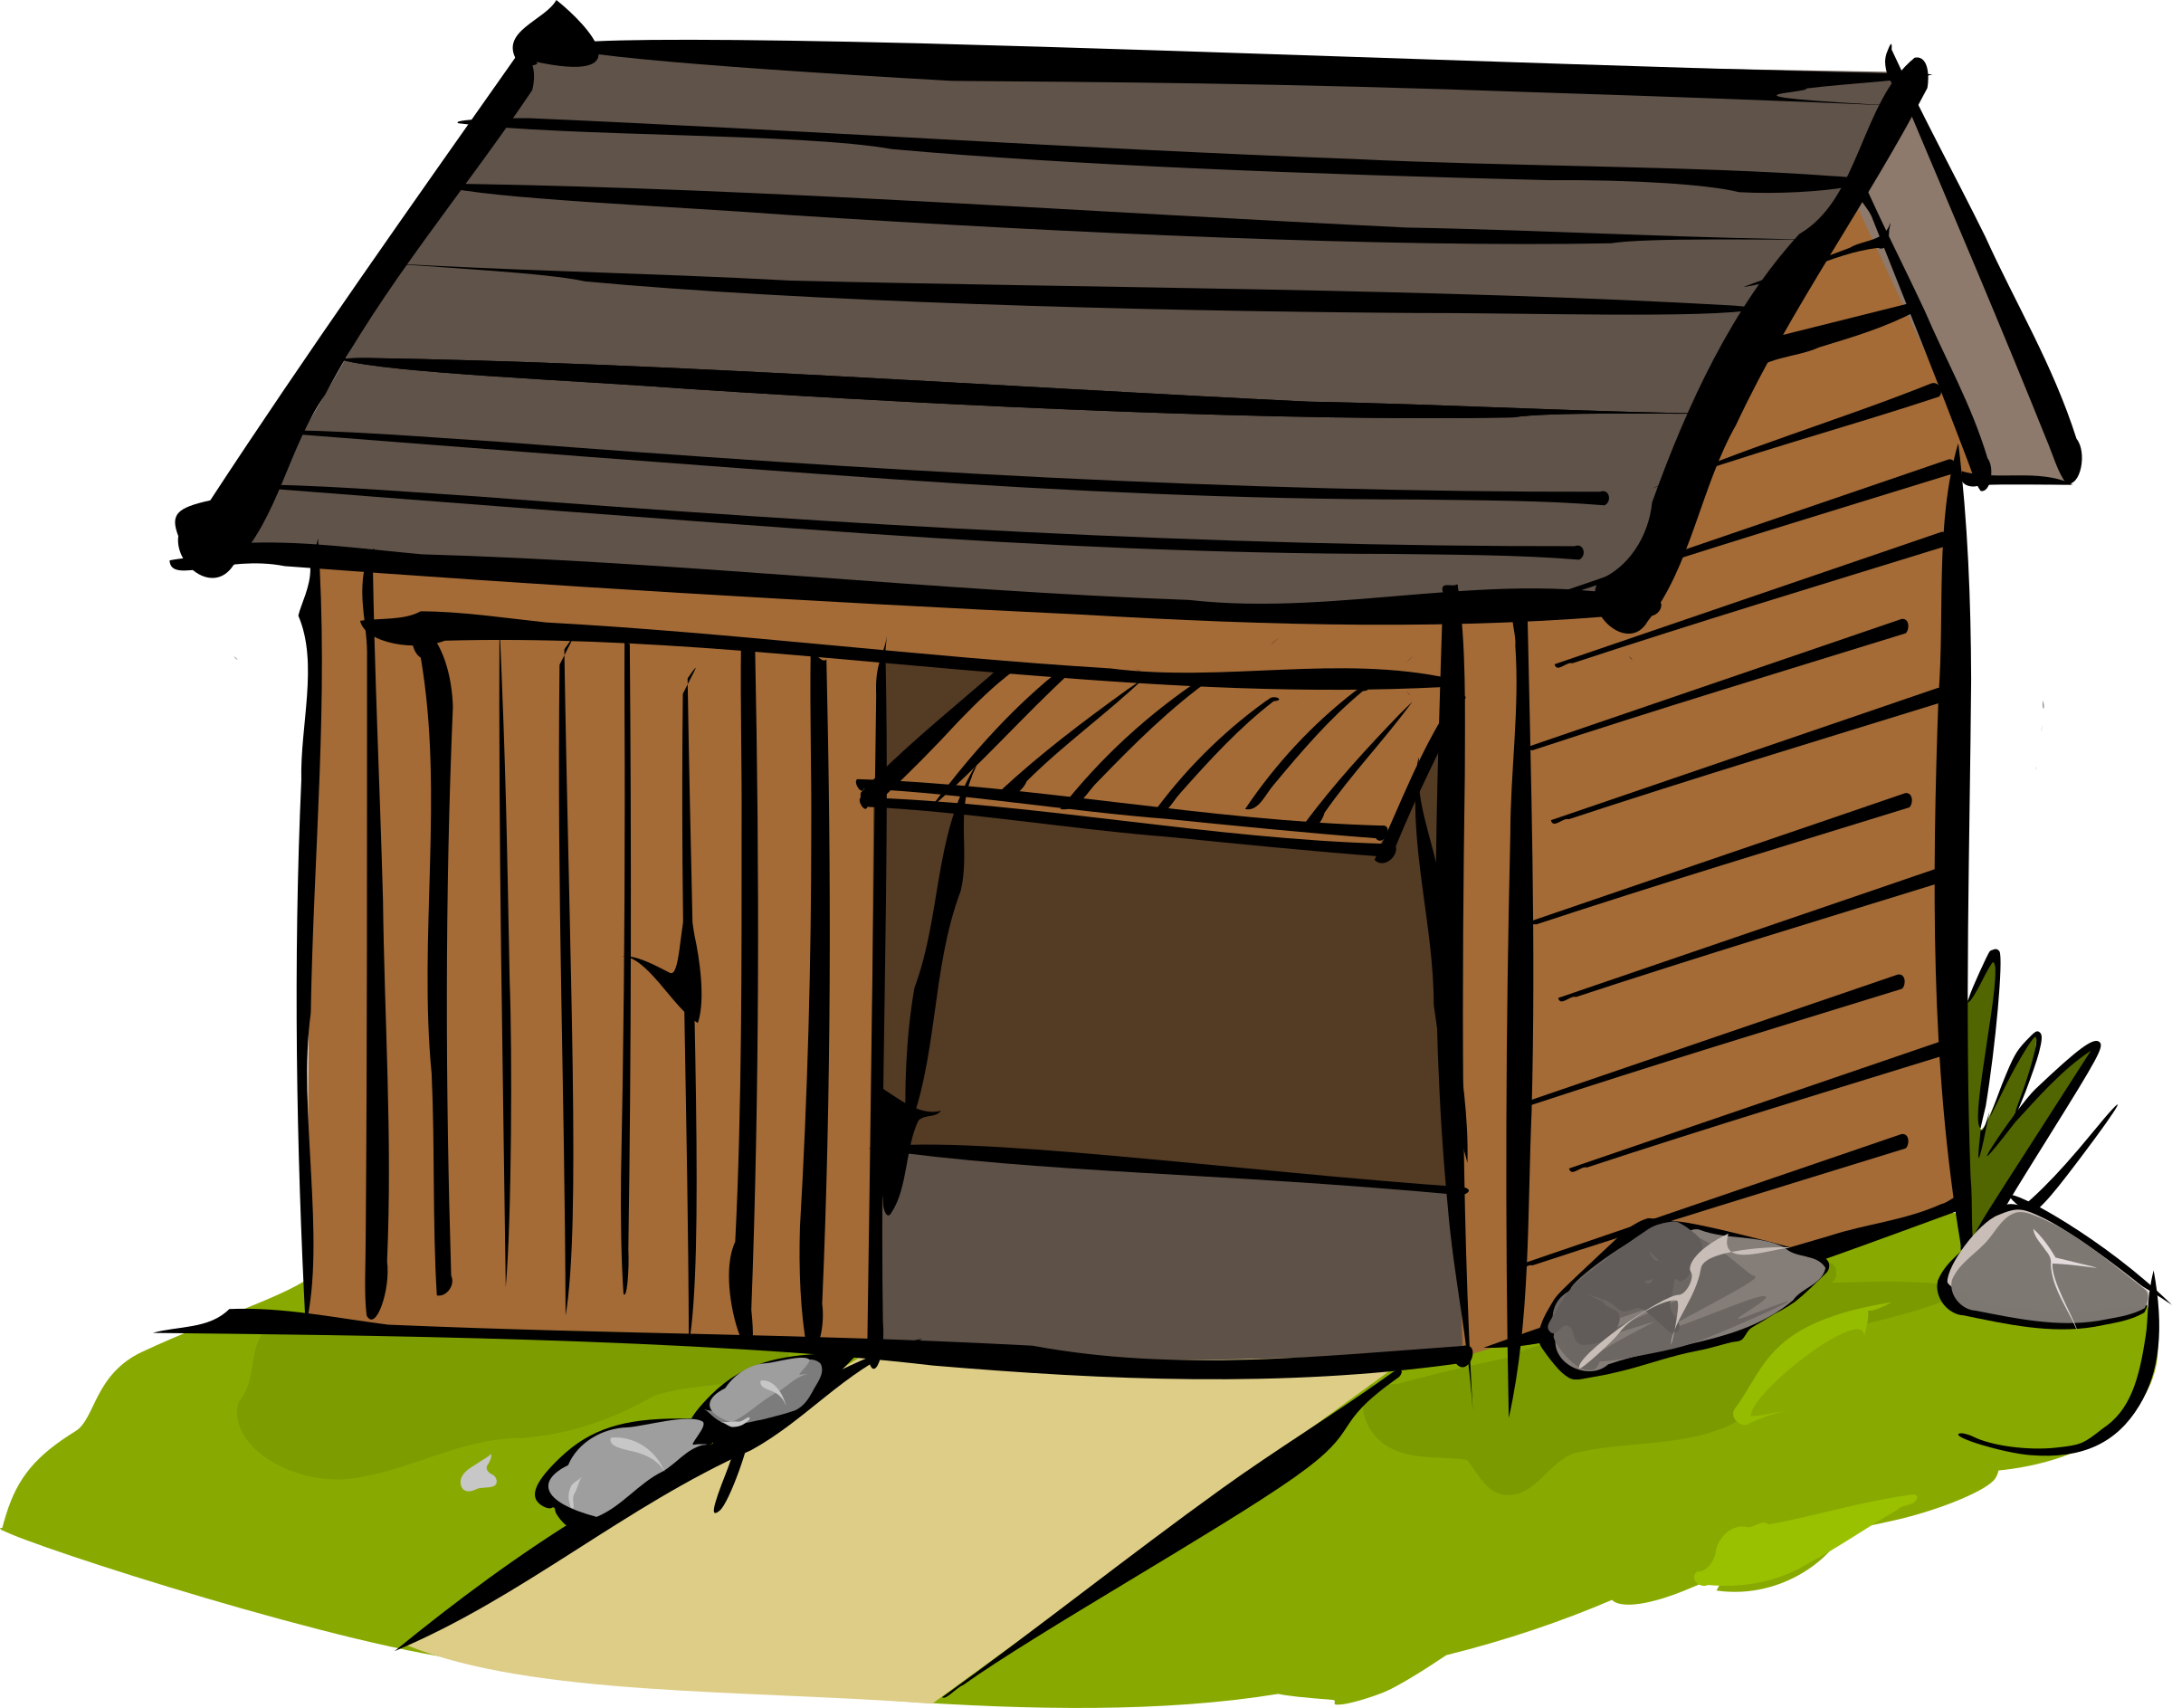 Clipart house garage. Shed storage building free